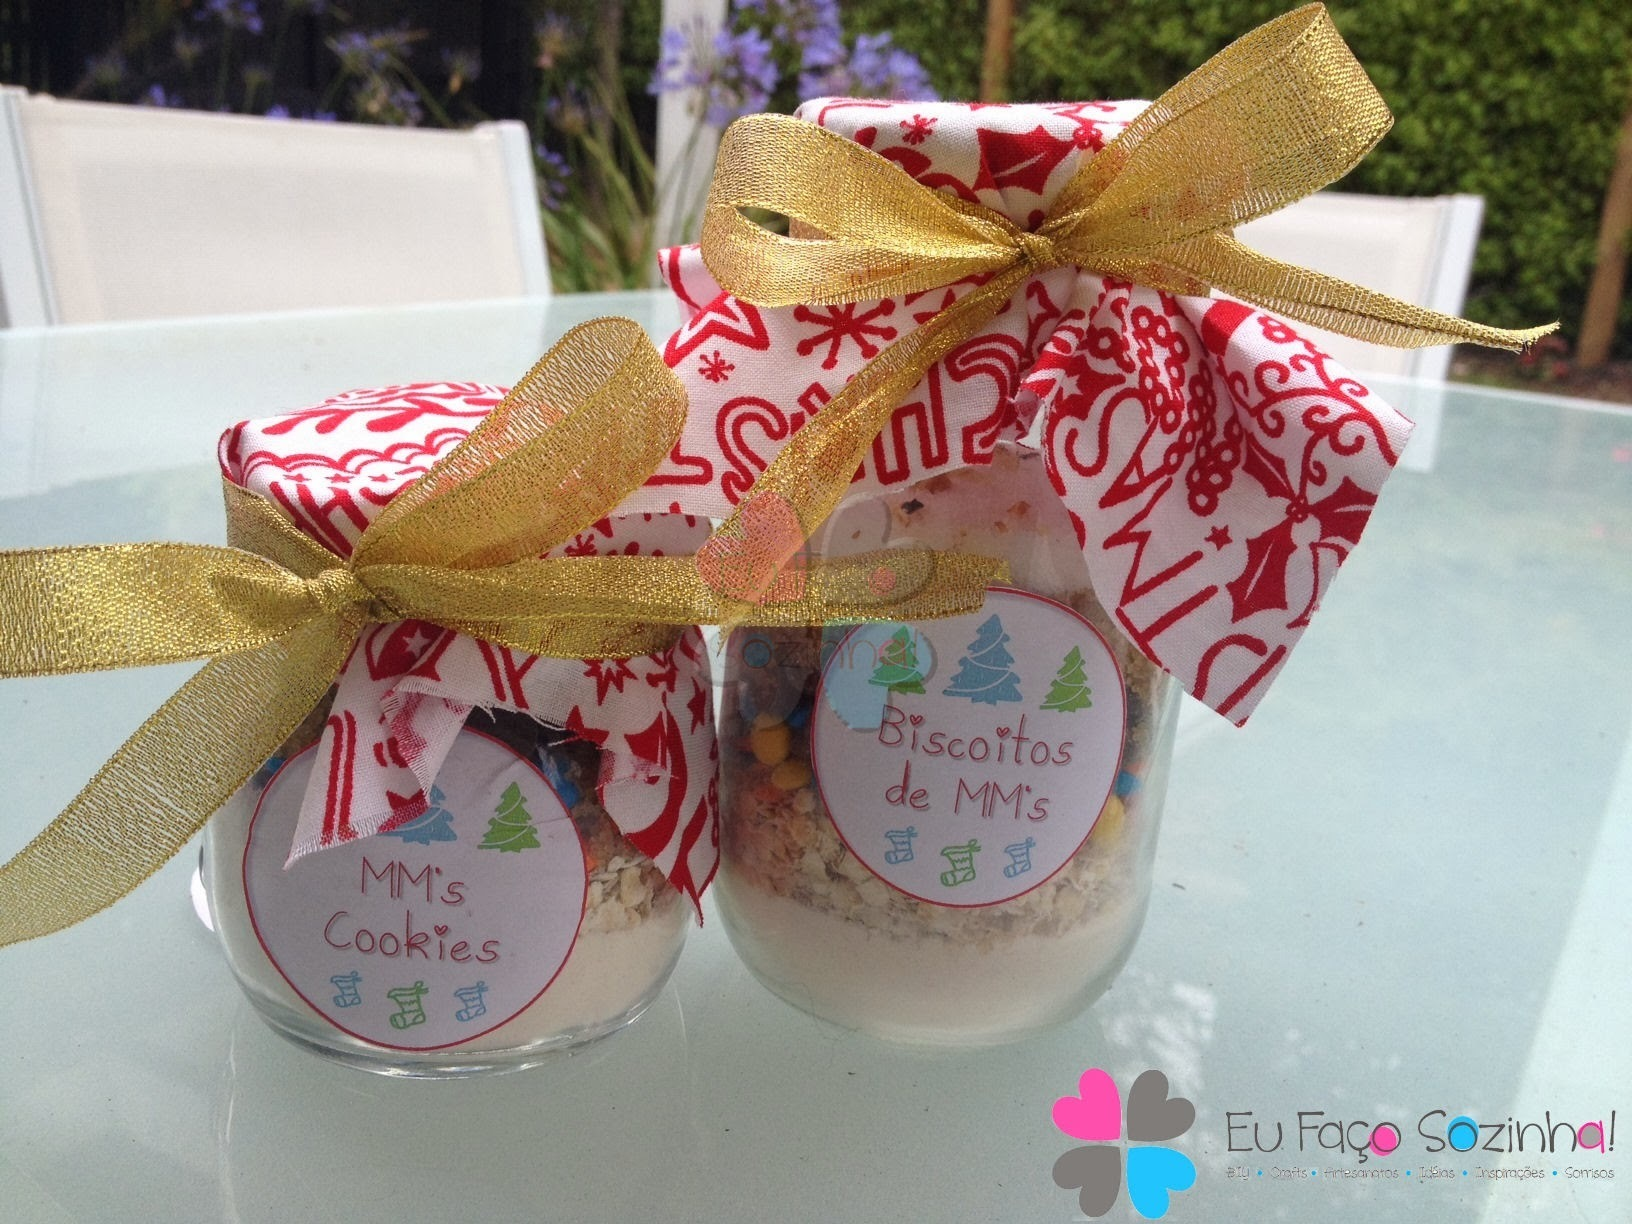 Bolacha de Natal no vidro - Christmas Cookies in a Jar